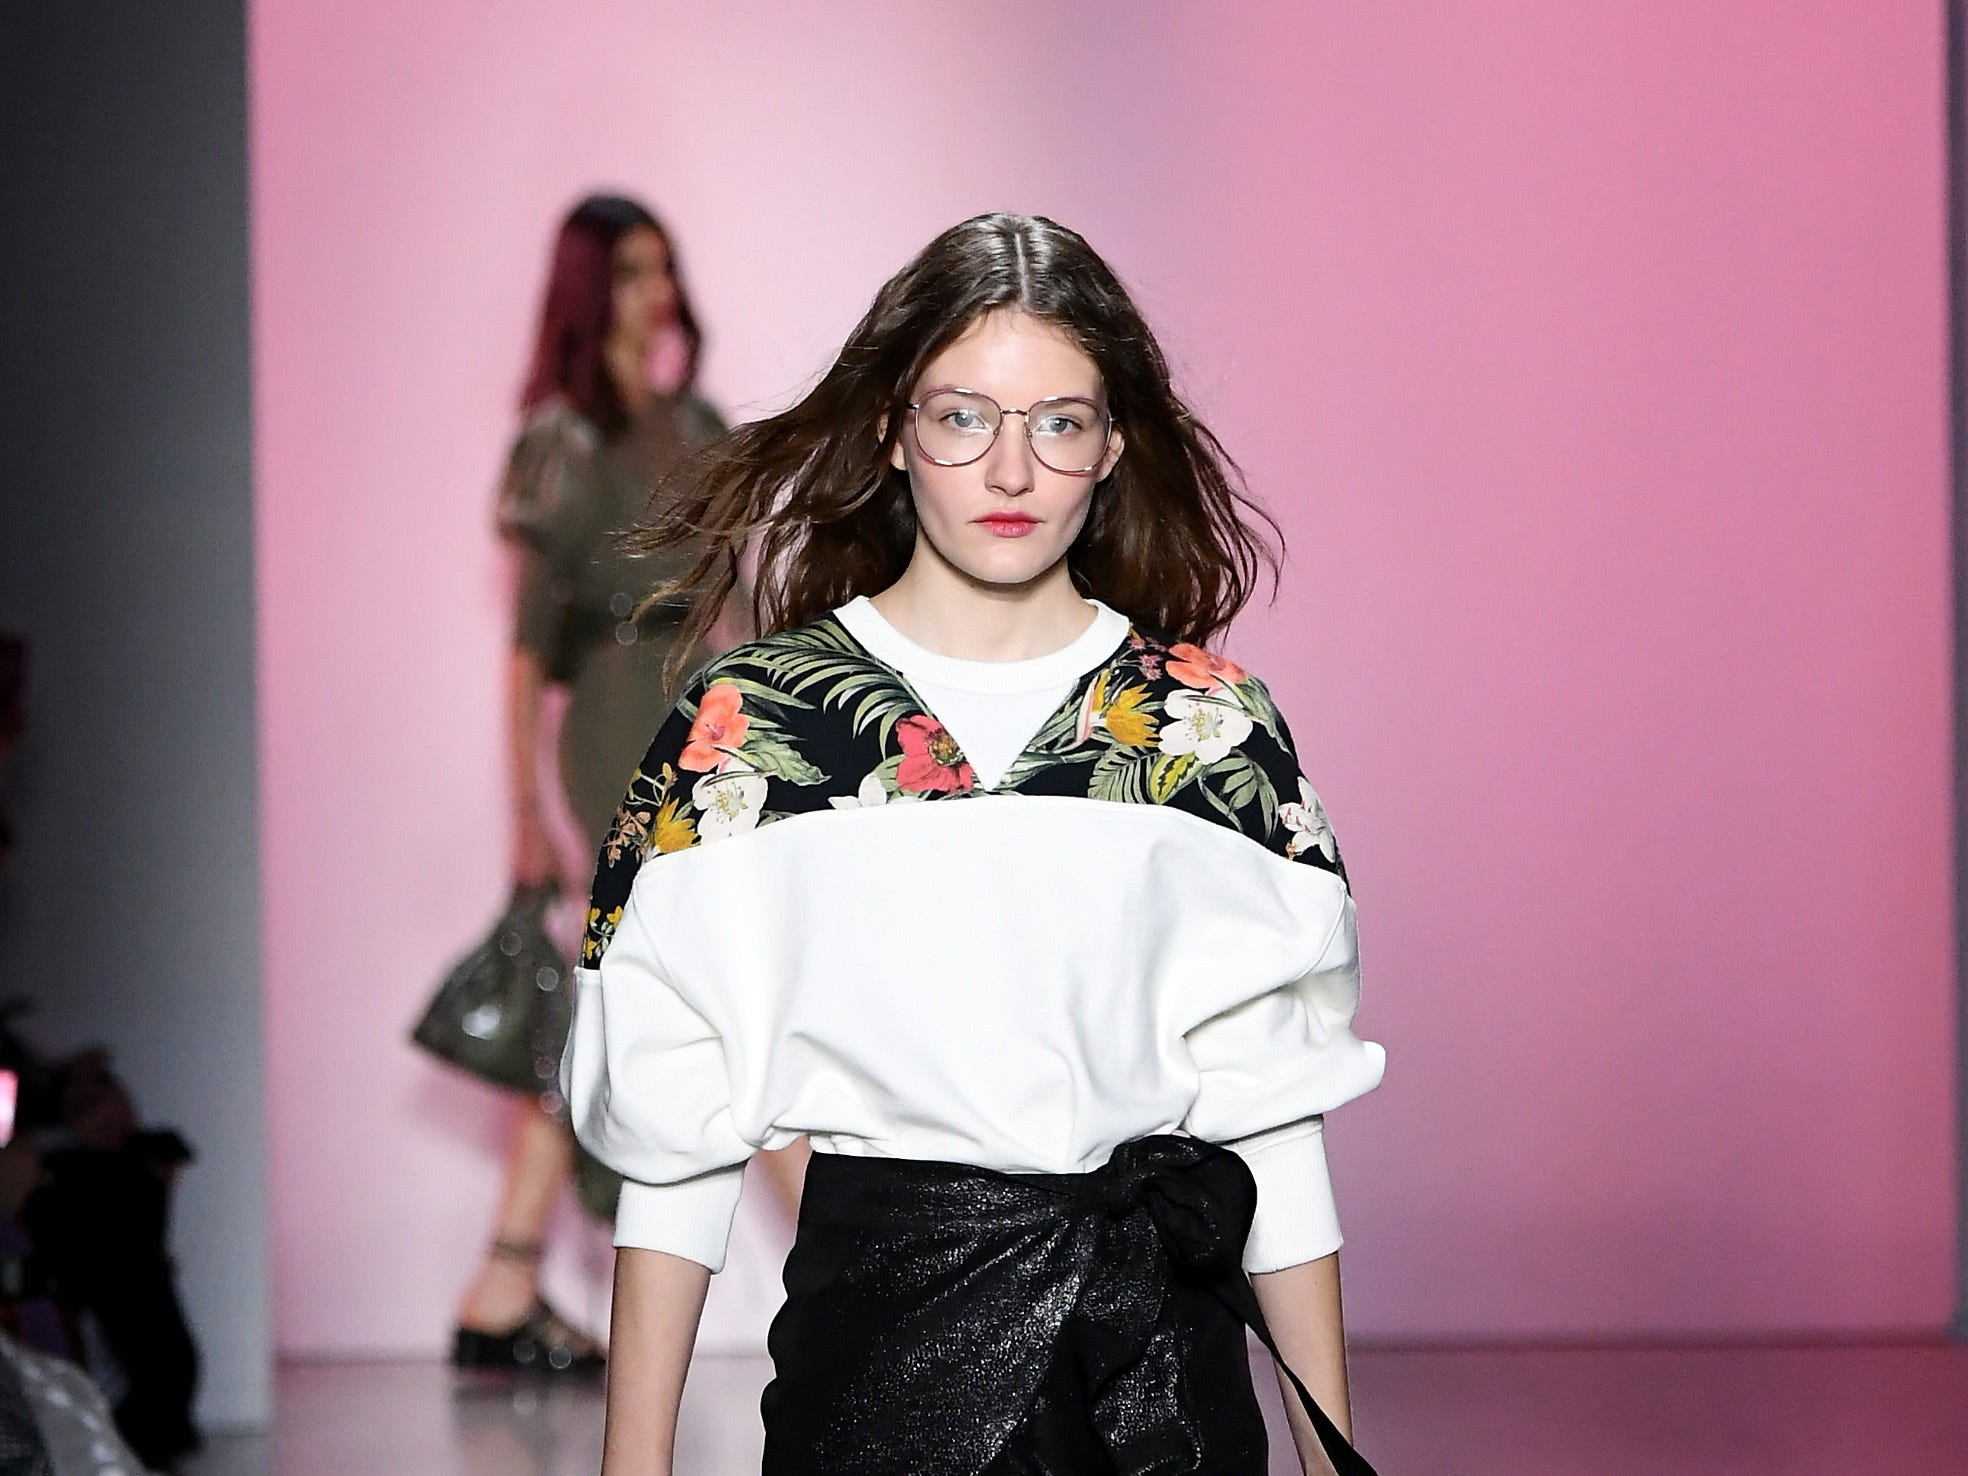 NEW YORK, NY - FEBRUARY 10:  A model walks the runway for the Rebecca Minkoff fashion show during New York Fashion Week: The Shows at Gallery I at Spring Studios on February 10, 2019 in New York City.  (Photo by Mike Coppola/Getty Images for NYFW: The Shows) ORG XMIT: 775290847 ORIG FILE ID: 1097085544